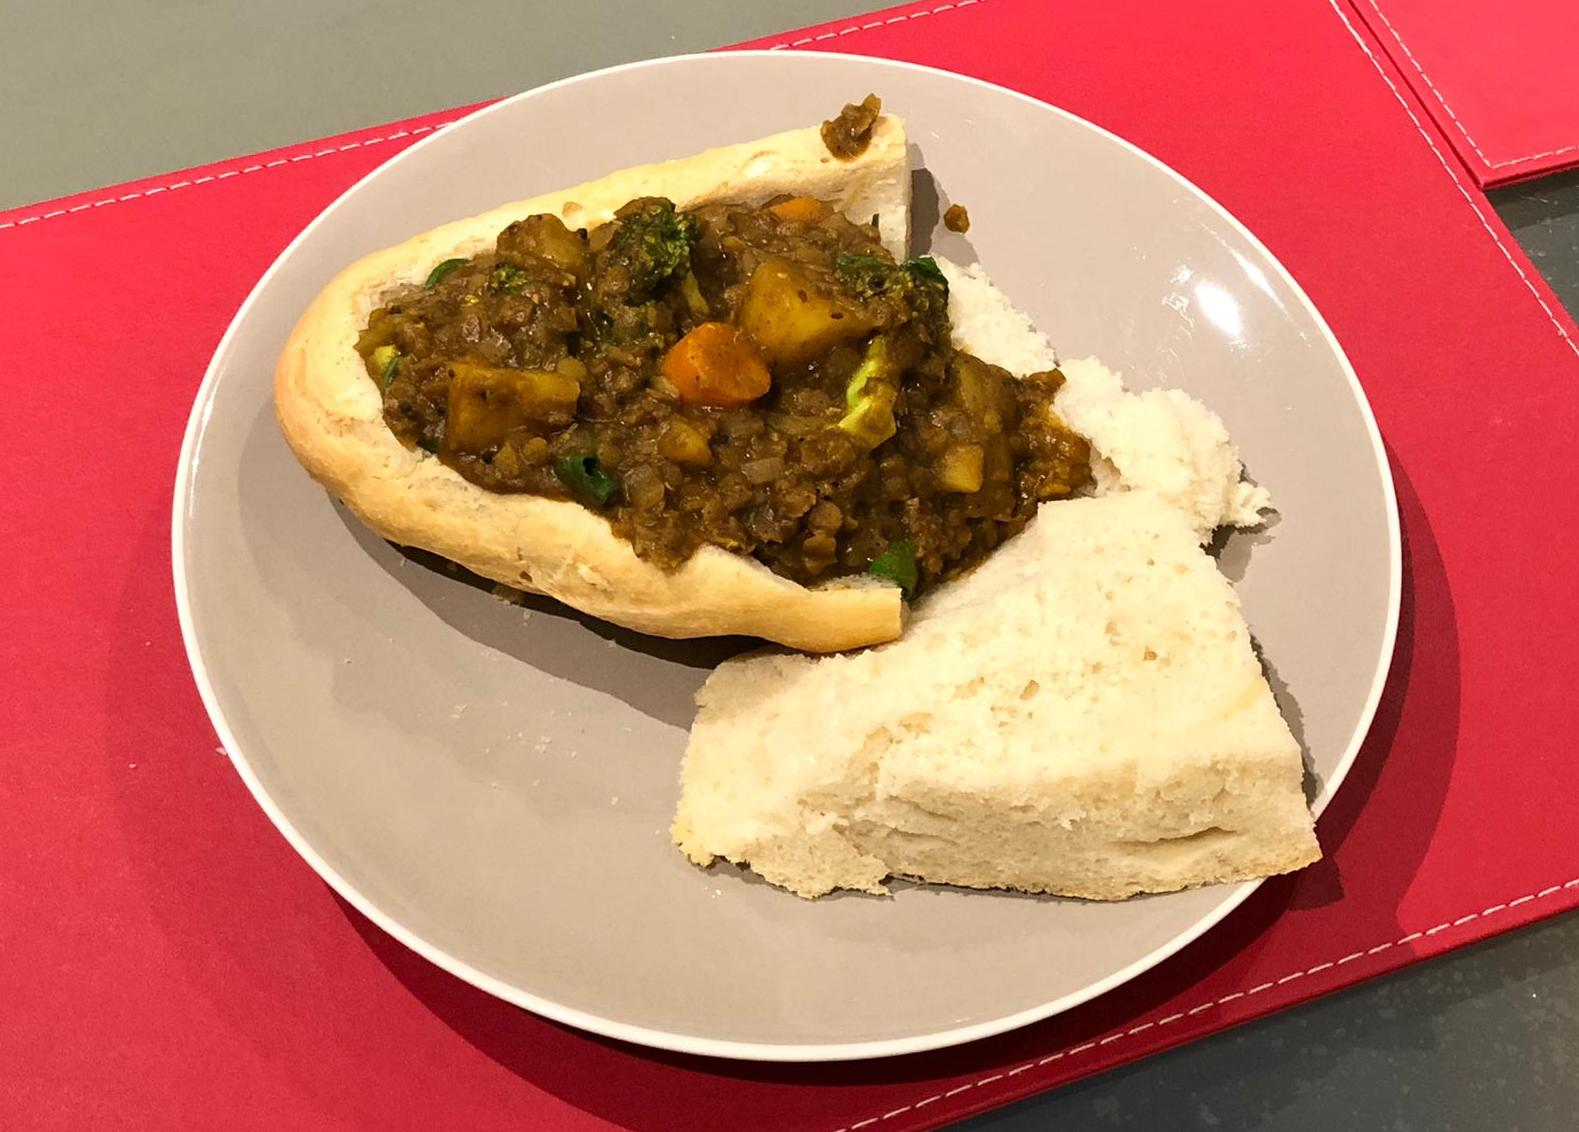 Lentil CUrry w. homemade bread